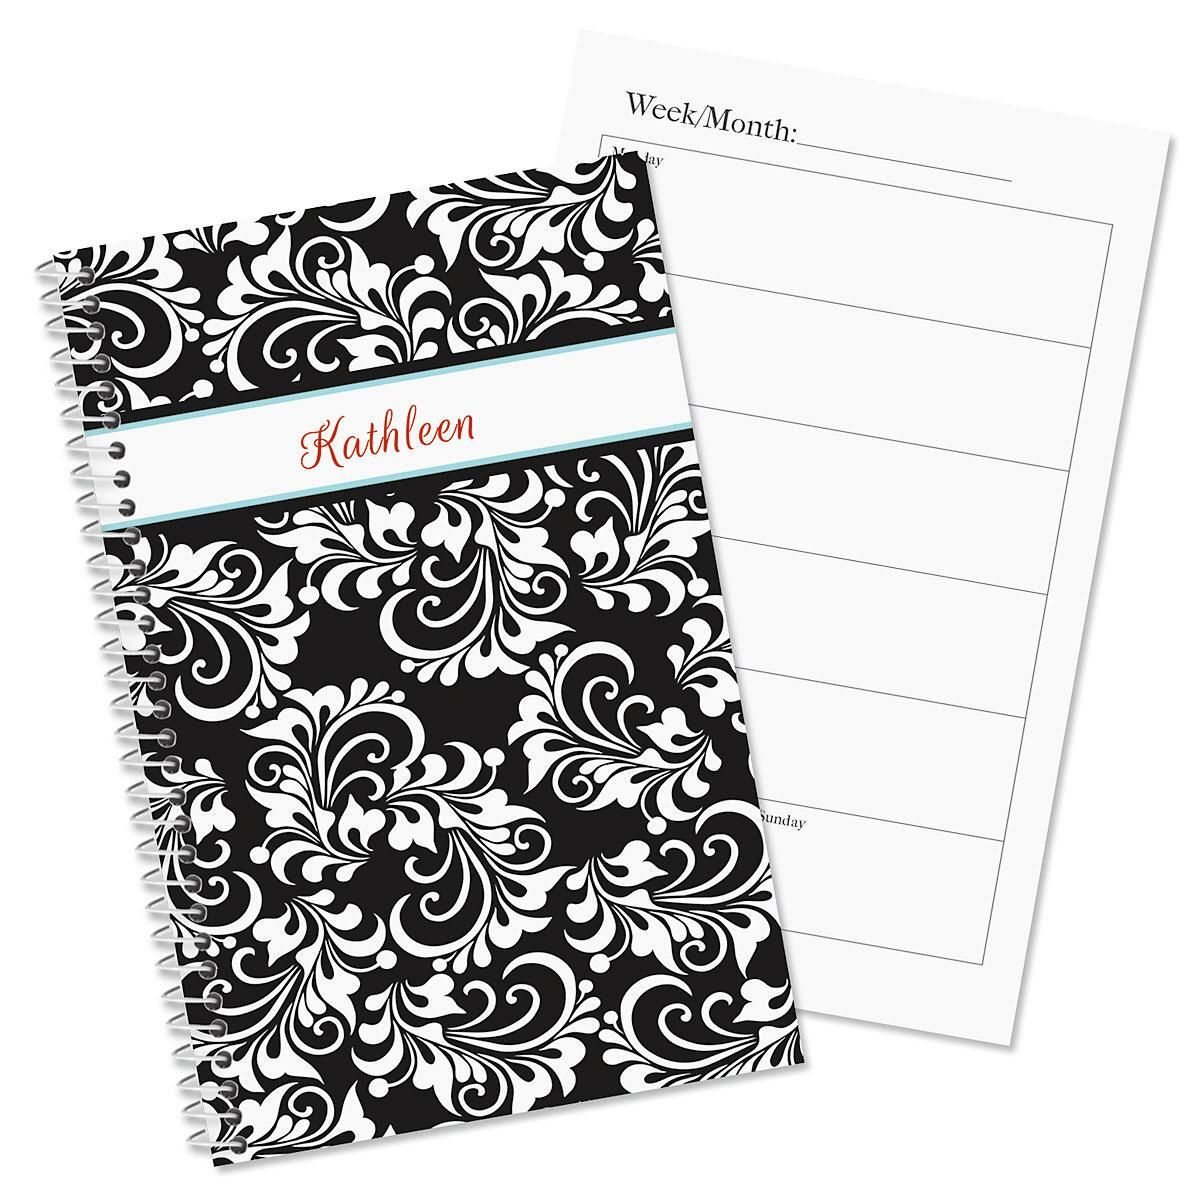 Opulent Personalized Weekly Planner